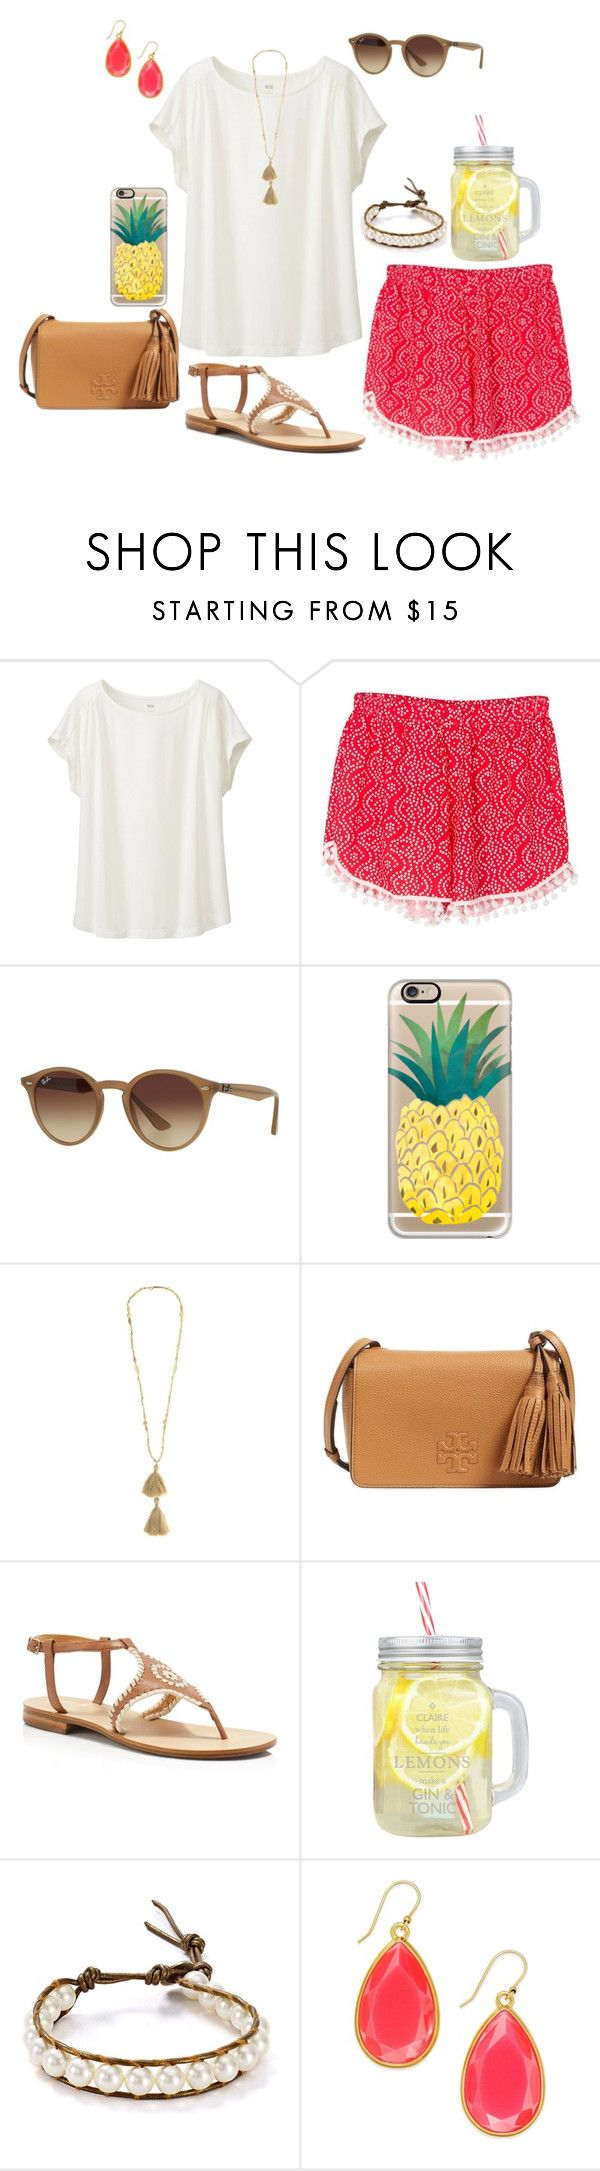 """""""Something different!"""" by lulucutshall ❤ liked on Polyvore featuring Uniqlo, Ray-Ban, Casetify, Isabel Marant, Tory Burch, Jack Rogers, Chan Luu and Kate Spade"""